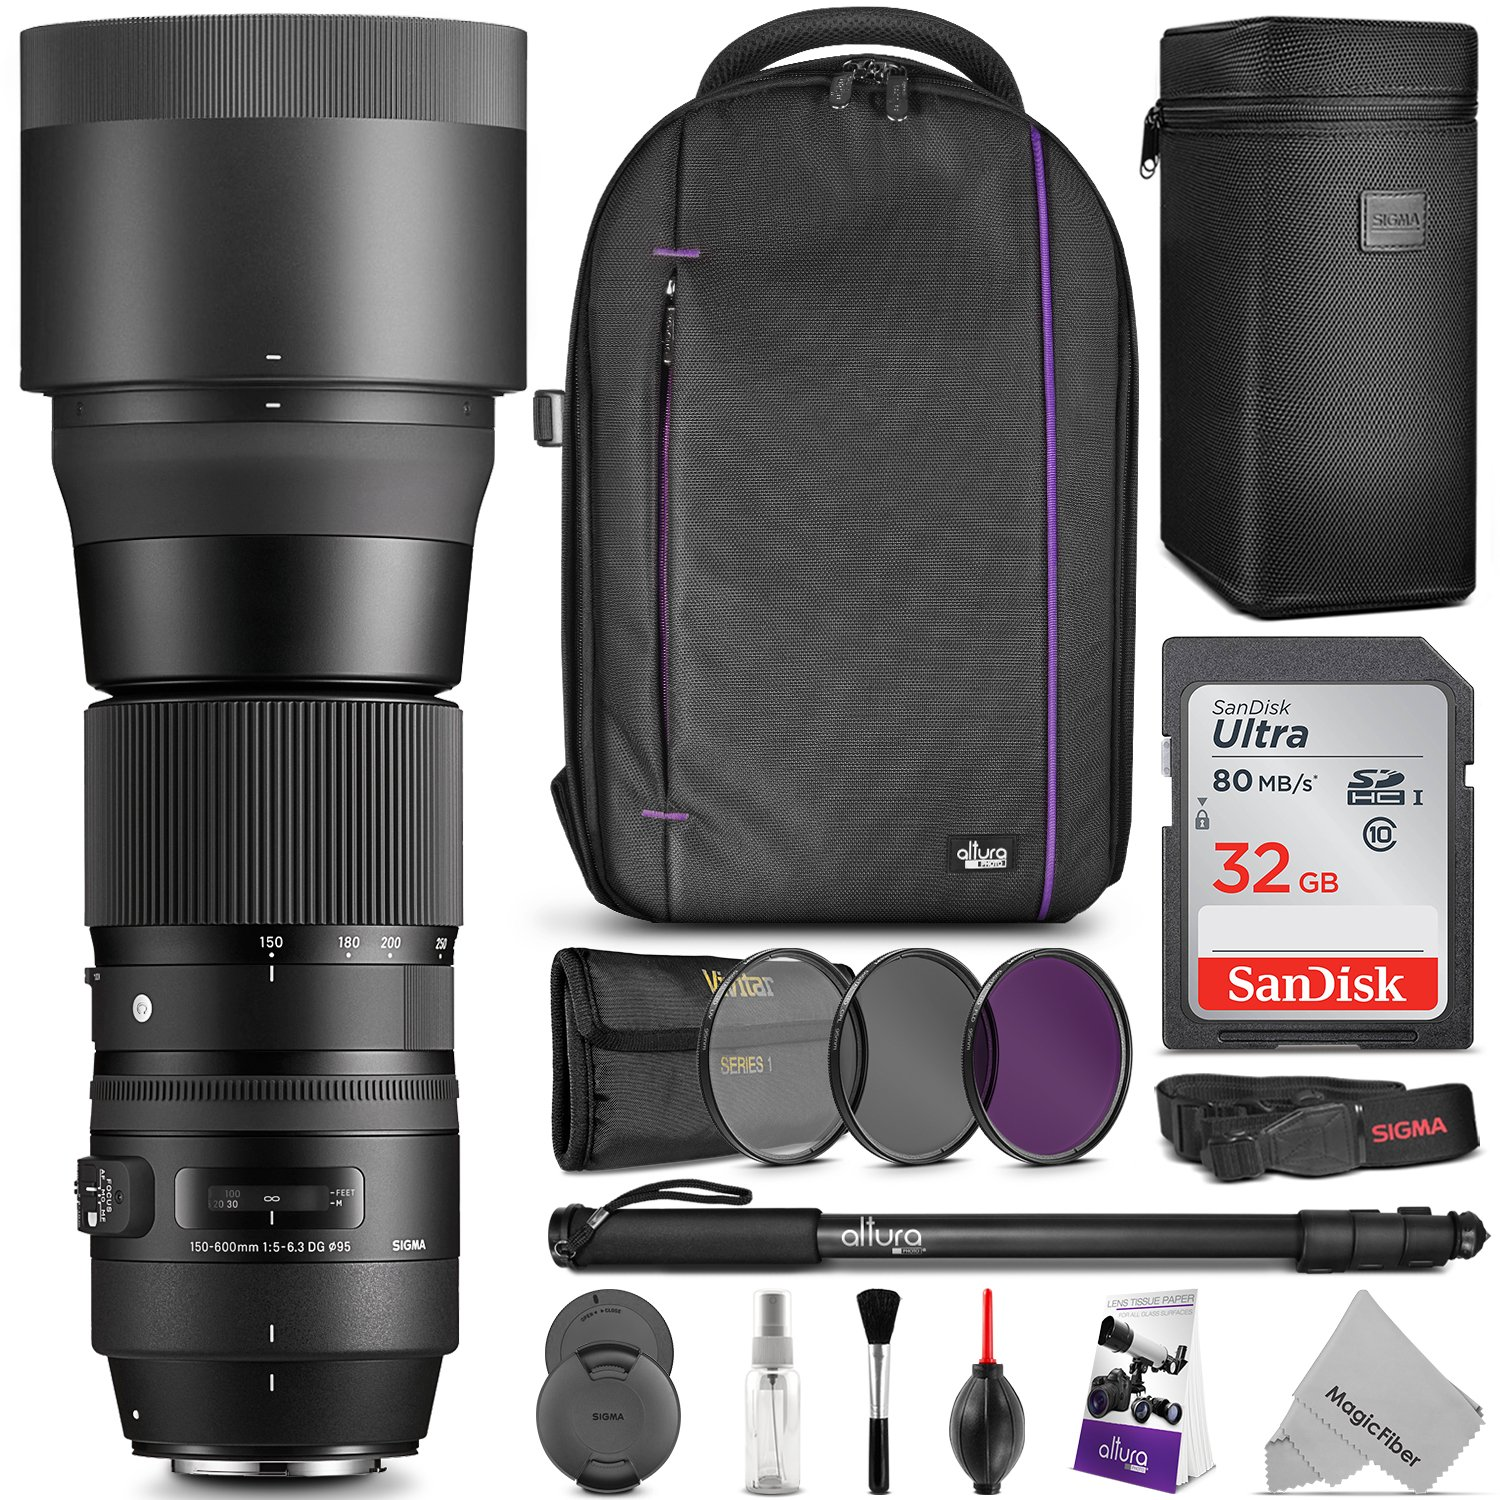 &quot;</a></noscript></p><p>&nbsp;Sigma 150-600mm f/5-6.3 DG OS HSM Super Telephoto Zoom Lens for NIkon+ DSLR Camera Backpack + SanDisk 32GB Ultra UHS-I SDHC Memory Card (Class 10) + Pro 67&#8243;></a></p><p>The Sigma 150-600mm f/5-6.3 DG OS HSM Contemporary Lens is the first hyper-telephoto zoom from the contemporary line. It is lightweight and compact in construction and offers a HSM (Hyper-Sonic Motor), Optical Stabilizer with Accelerometer, filter size of 95mm and features a minimum aperture of f/22.</p><h3><a href=